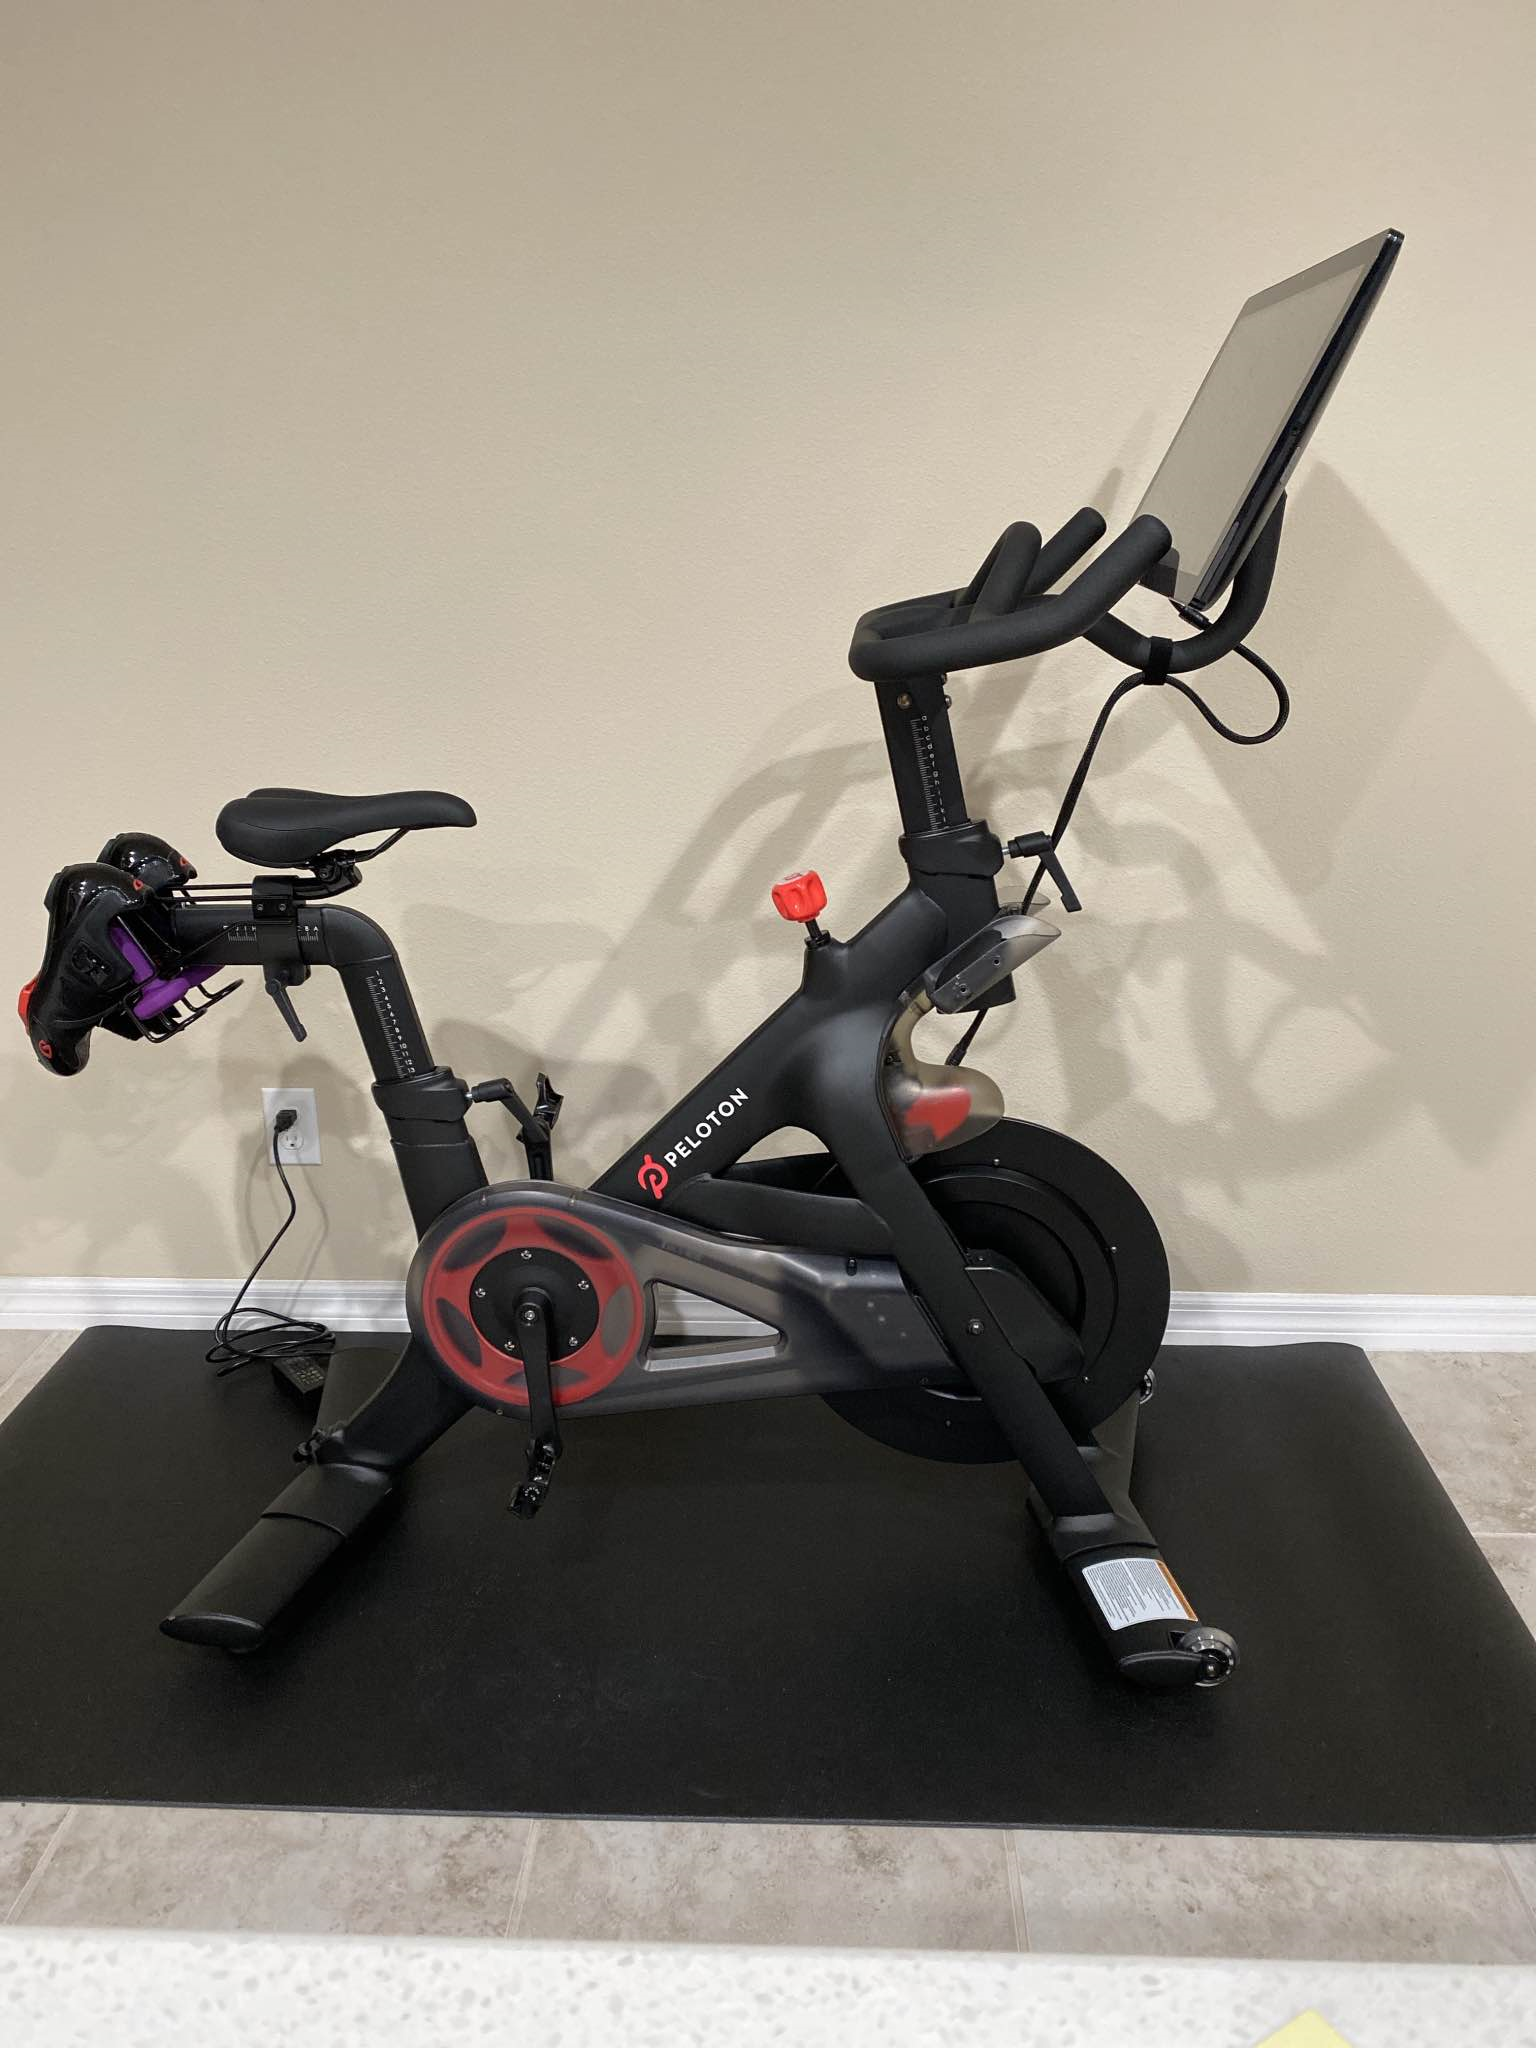 Overview of The Peloton, it's specs and features and how it compares to the Bowflex C6